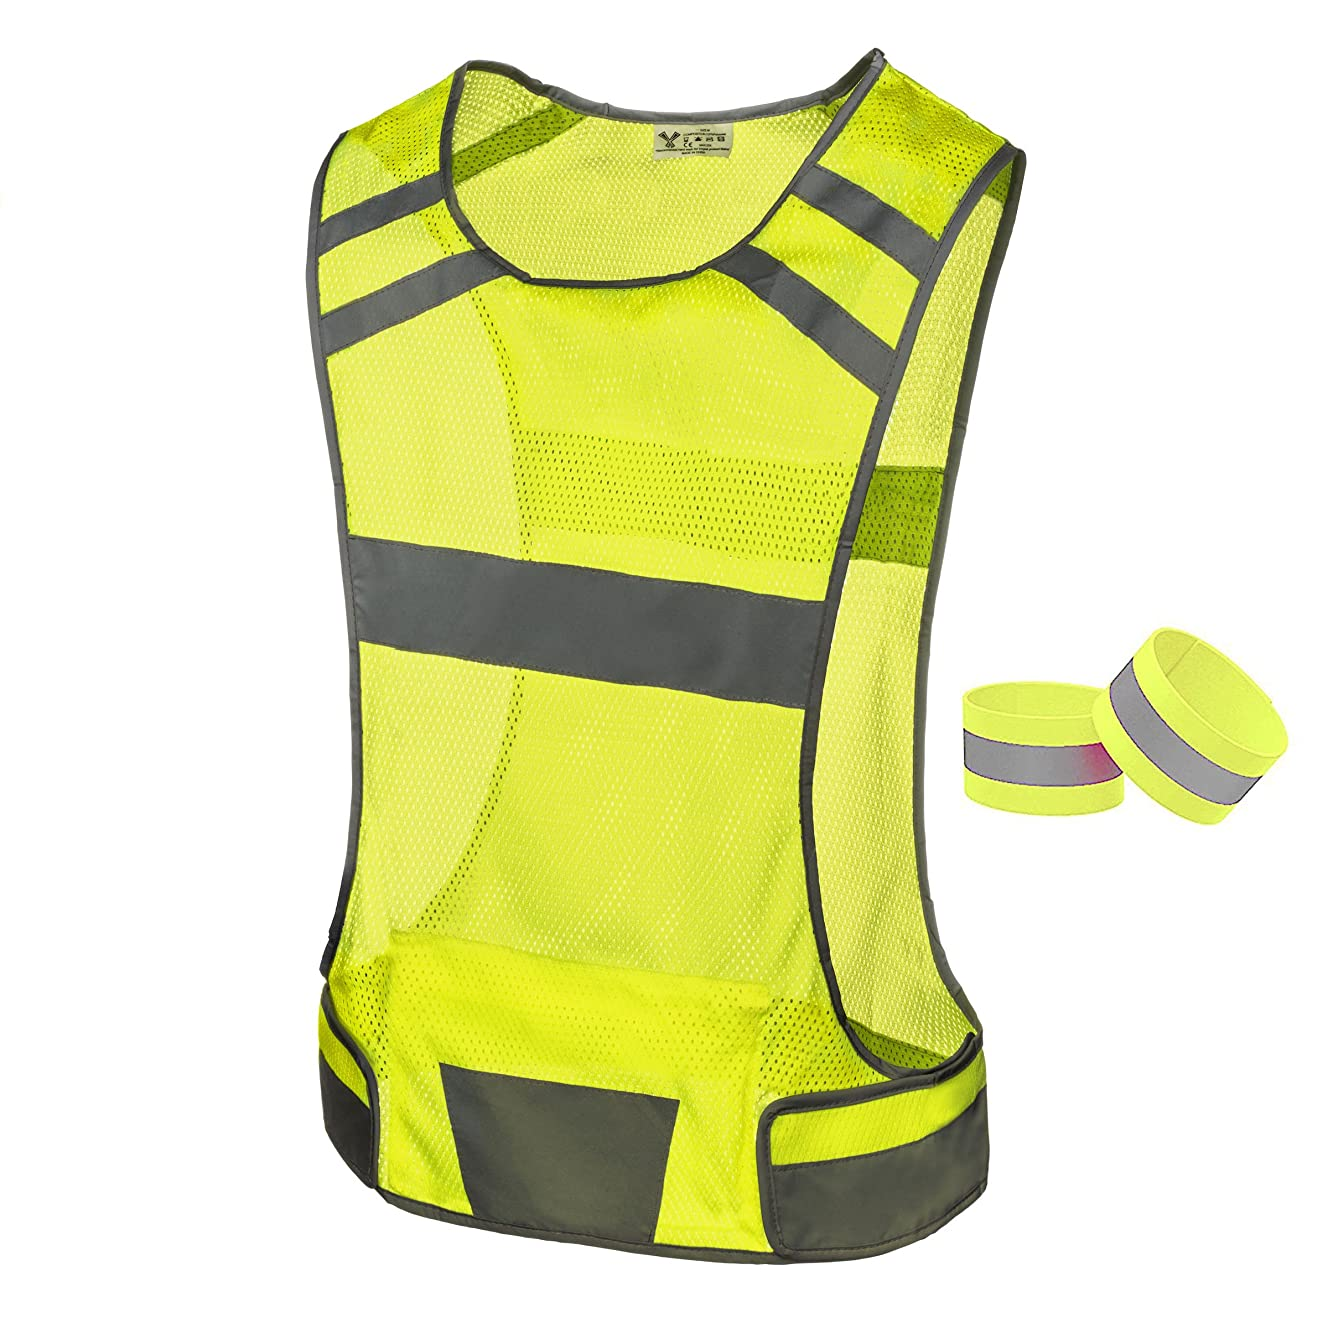 247 Viz Reflective Running Vest Gear - Stay Visible & Safe - Ultra Light & Comfortable Motorcycle Reflective Vest - Large Pocket & Adjustable Waist - Safety Vest - Free Bands